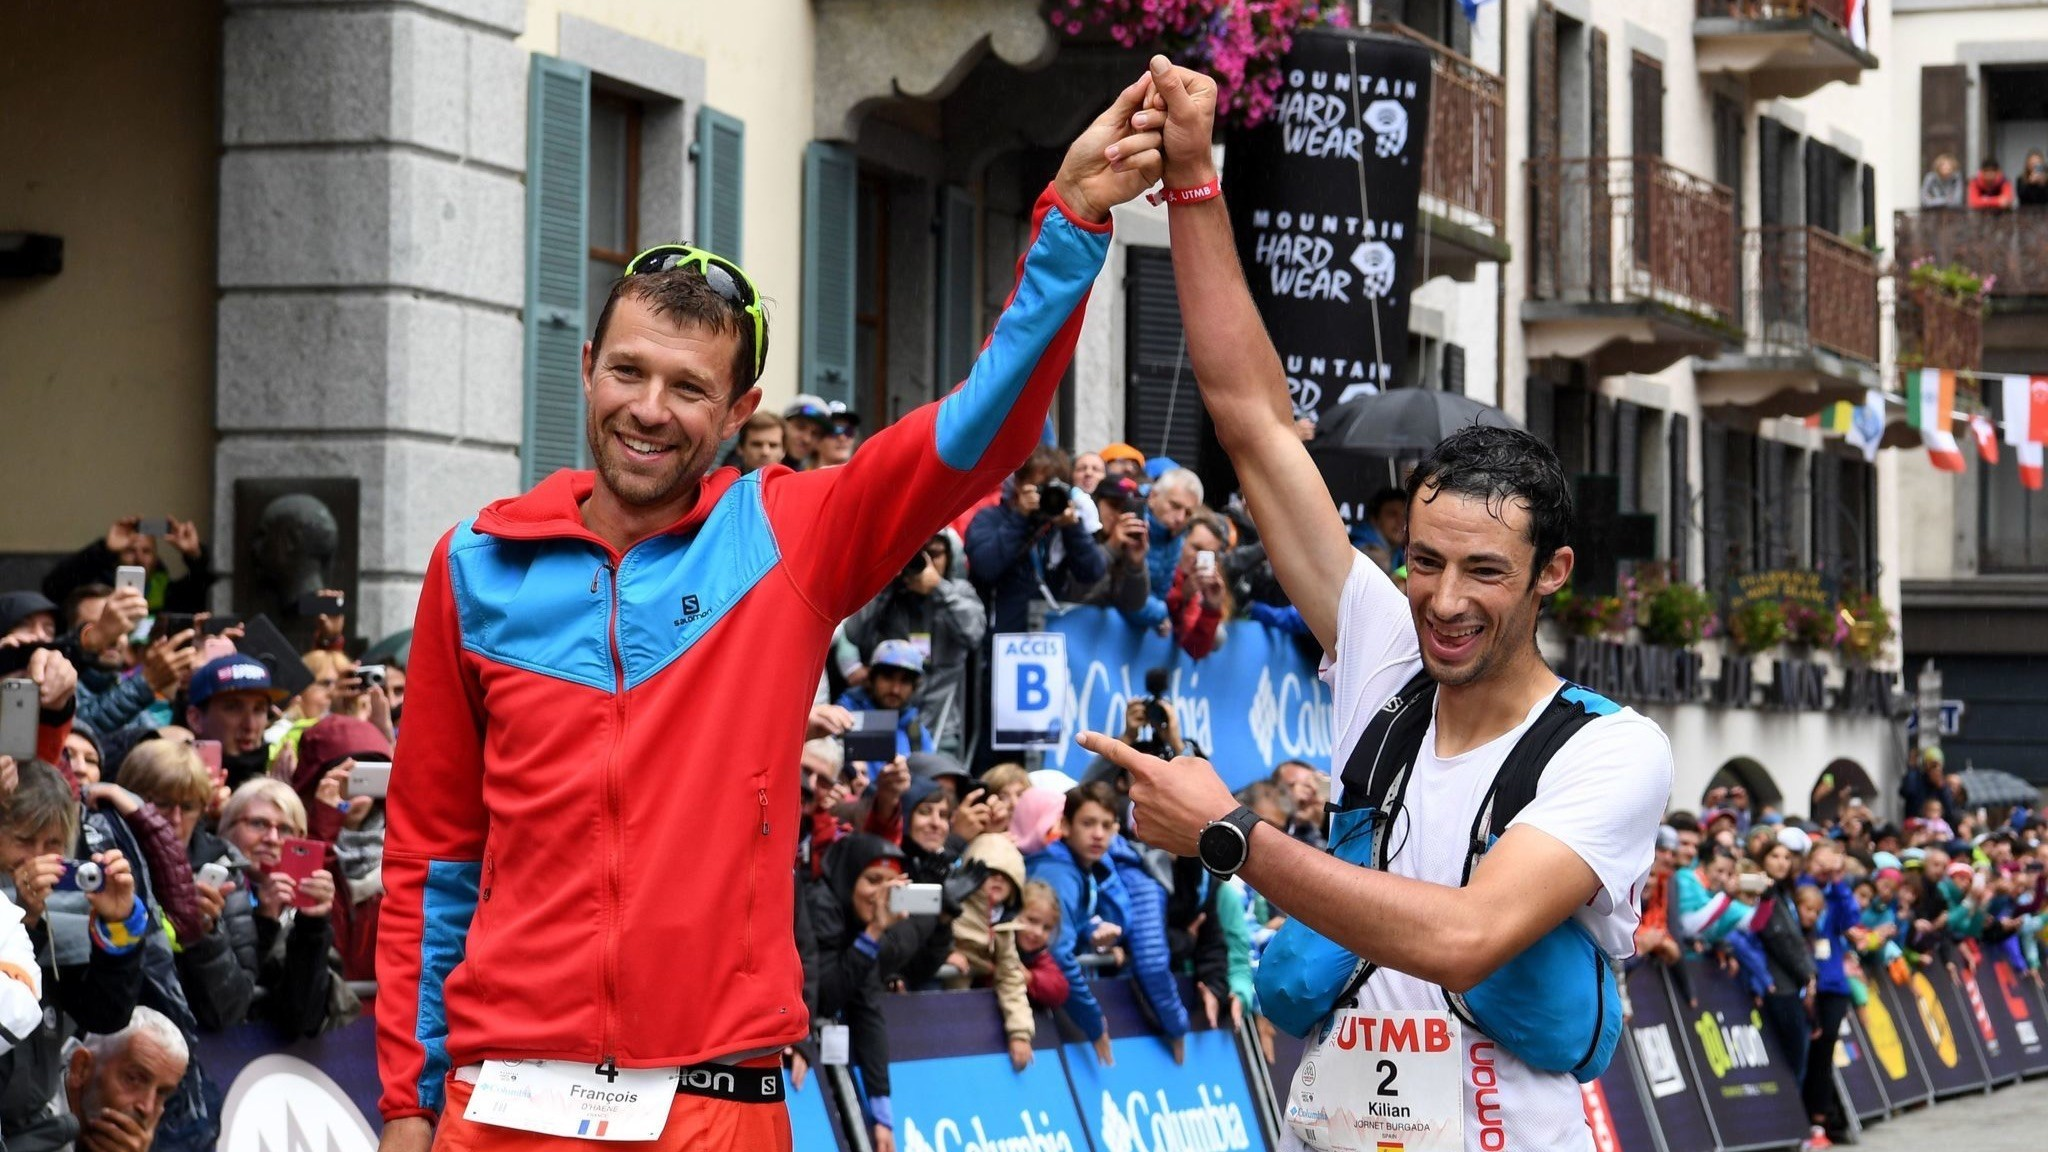 FRANCE-MOUNTAIN-RACE-TRAIL-UTMB